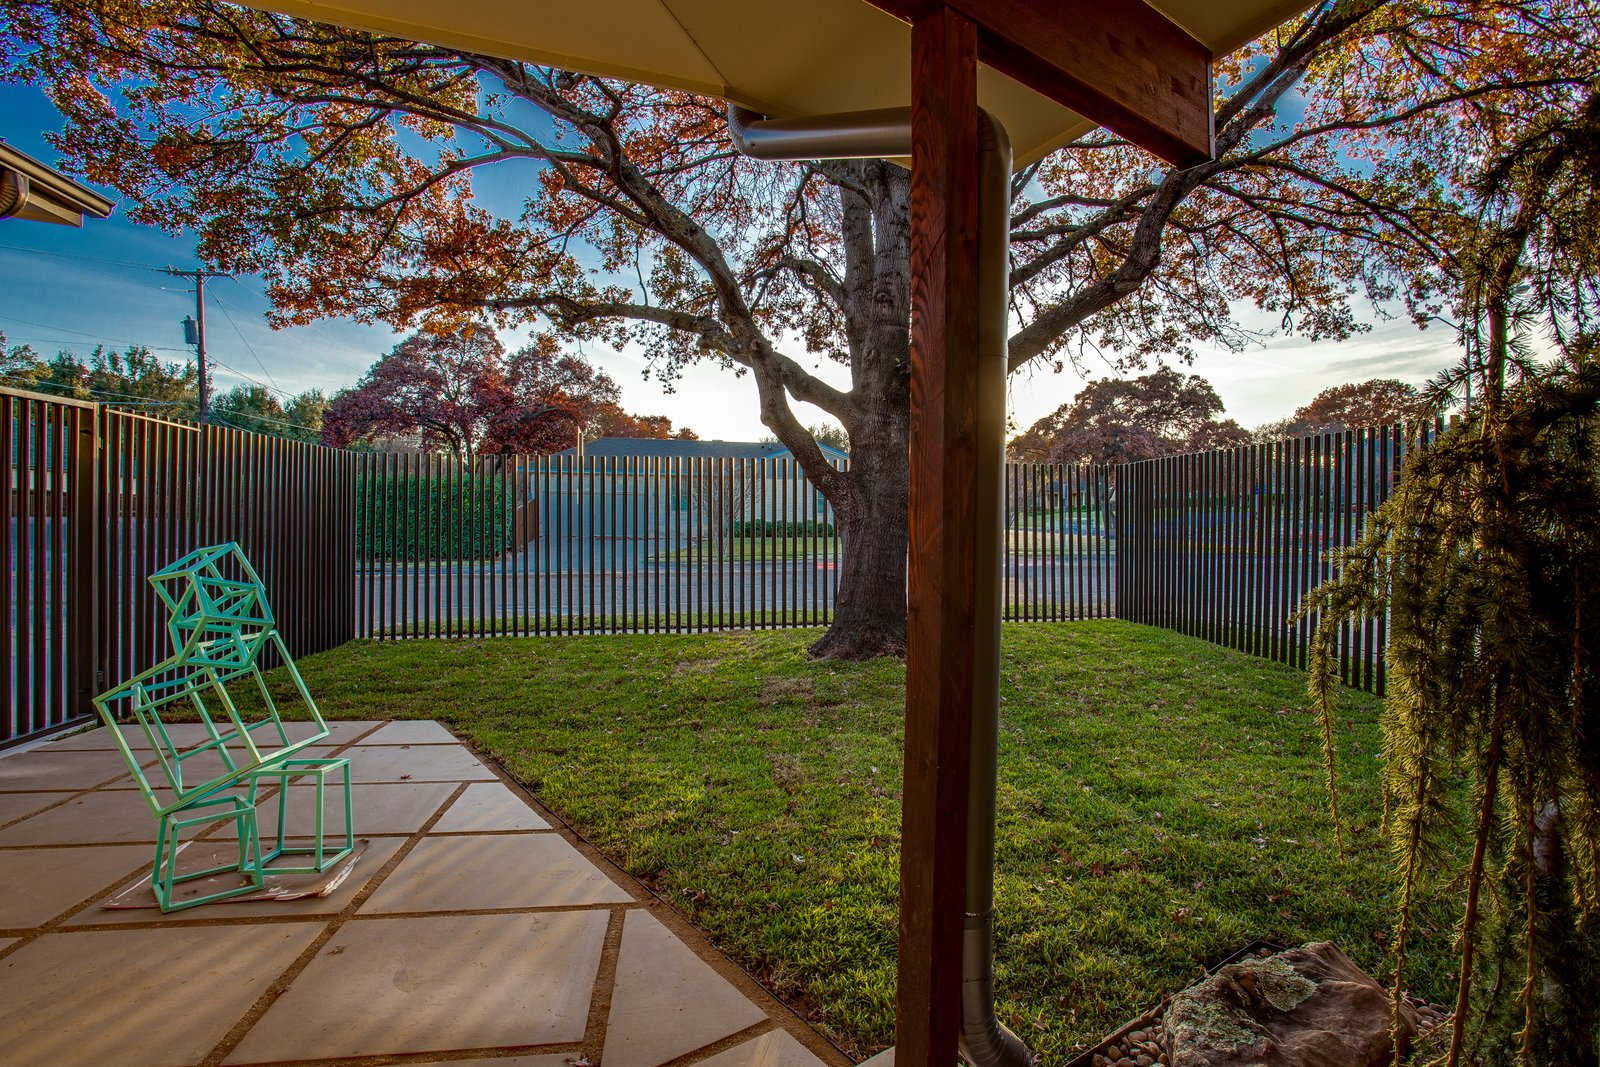 Outdoor, Side Yard, Trees, Hardscapes, Grass, Decomposed Granite Patio, Porch, Deck, Small Patio, Porch, Deck, Vertical Fences, Wall, Metal Fences, Wall, and Stone Fences, Wall South courtyard after  1963 Post and Beam Mid Century Modern by Tavis Westbrook